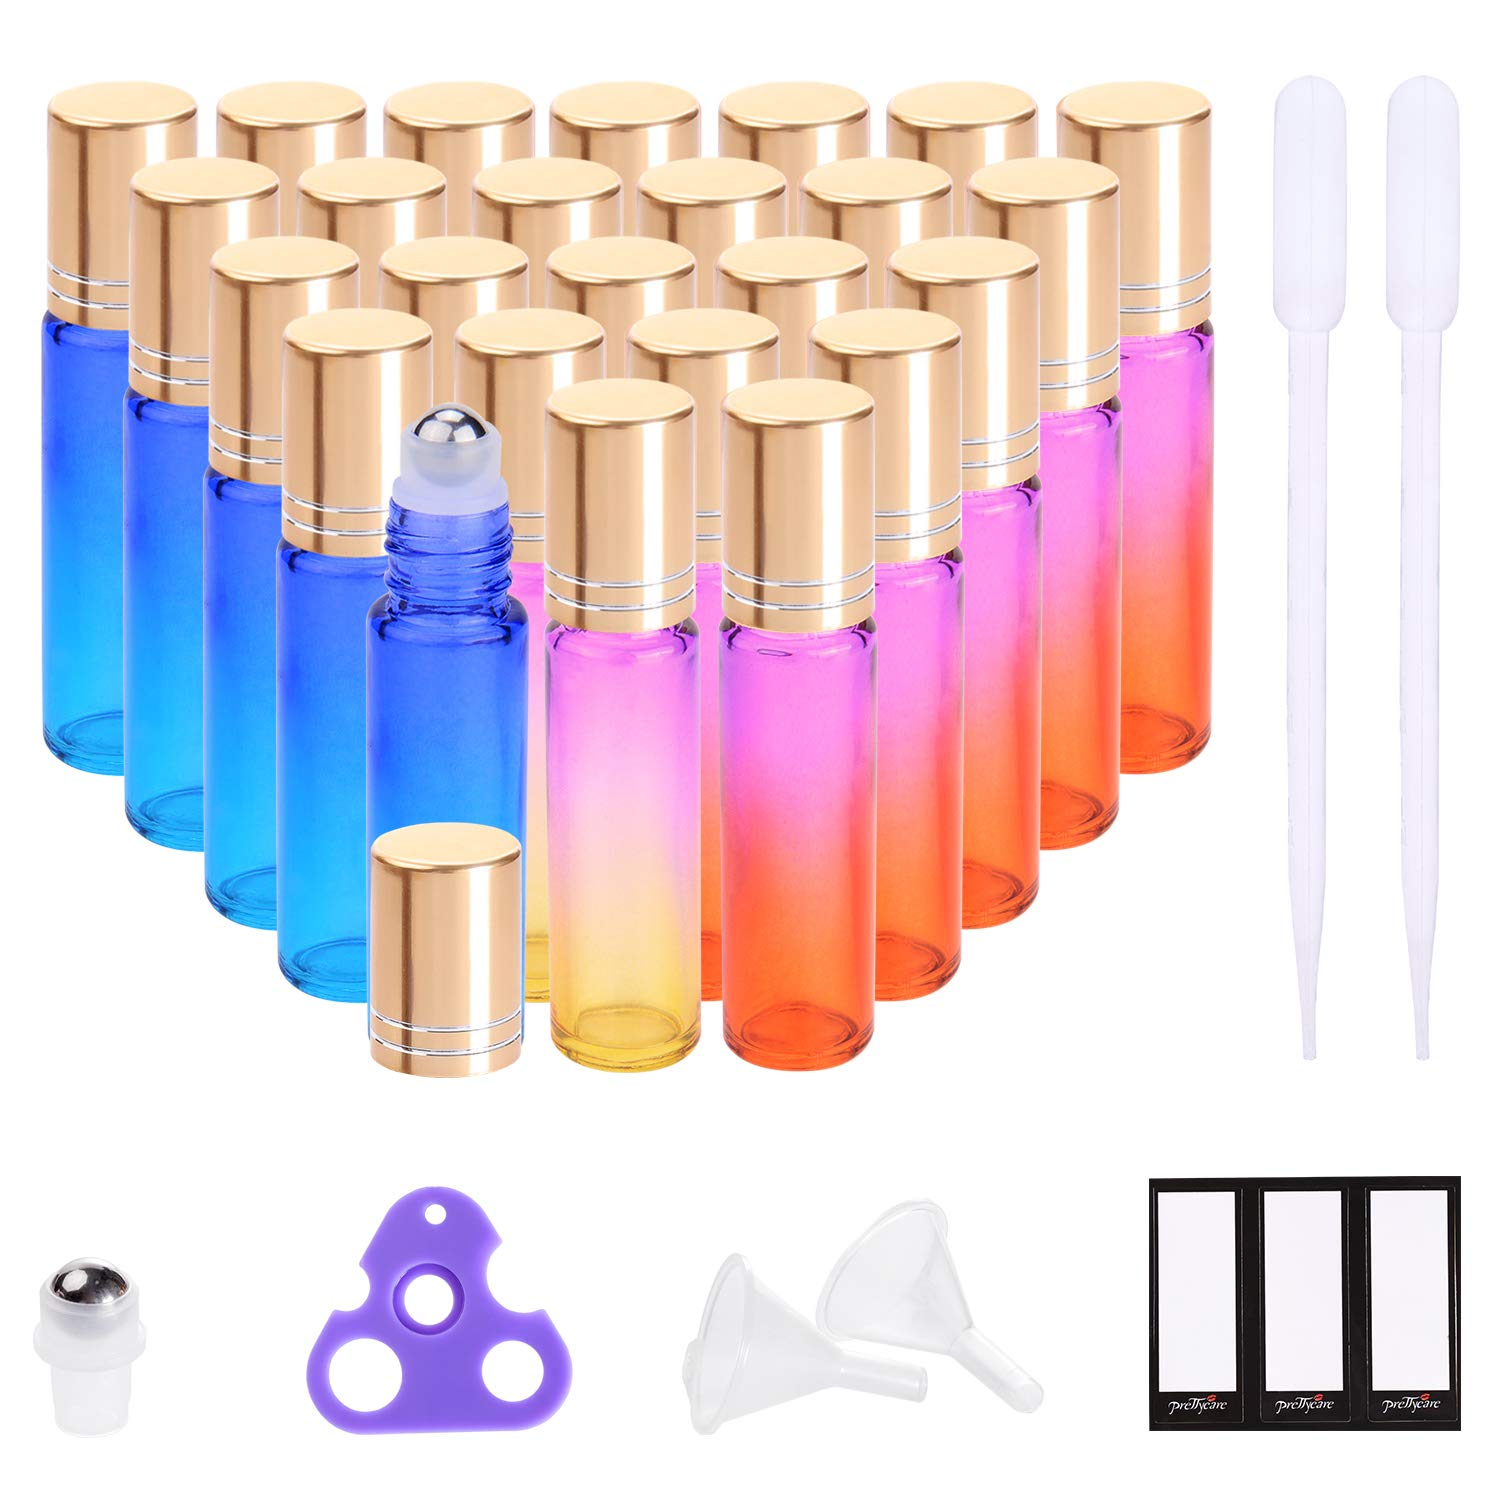 f291641e7626 Essential Oil Roller Bottles 10ml (Rainbow Glass with Golden Caps, 24 Pack,  4 Extra Stainless Steel Roller Balls, 48 Labels, 2 Openers, 2 Funnels by ...